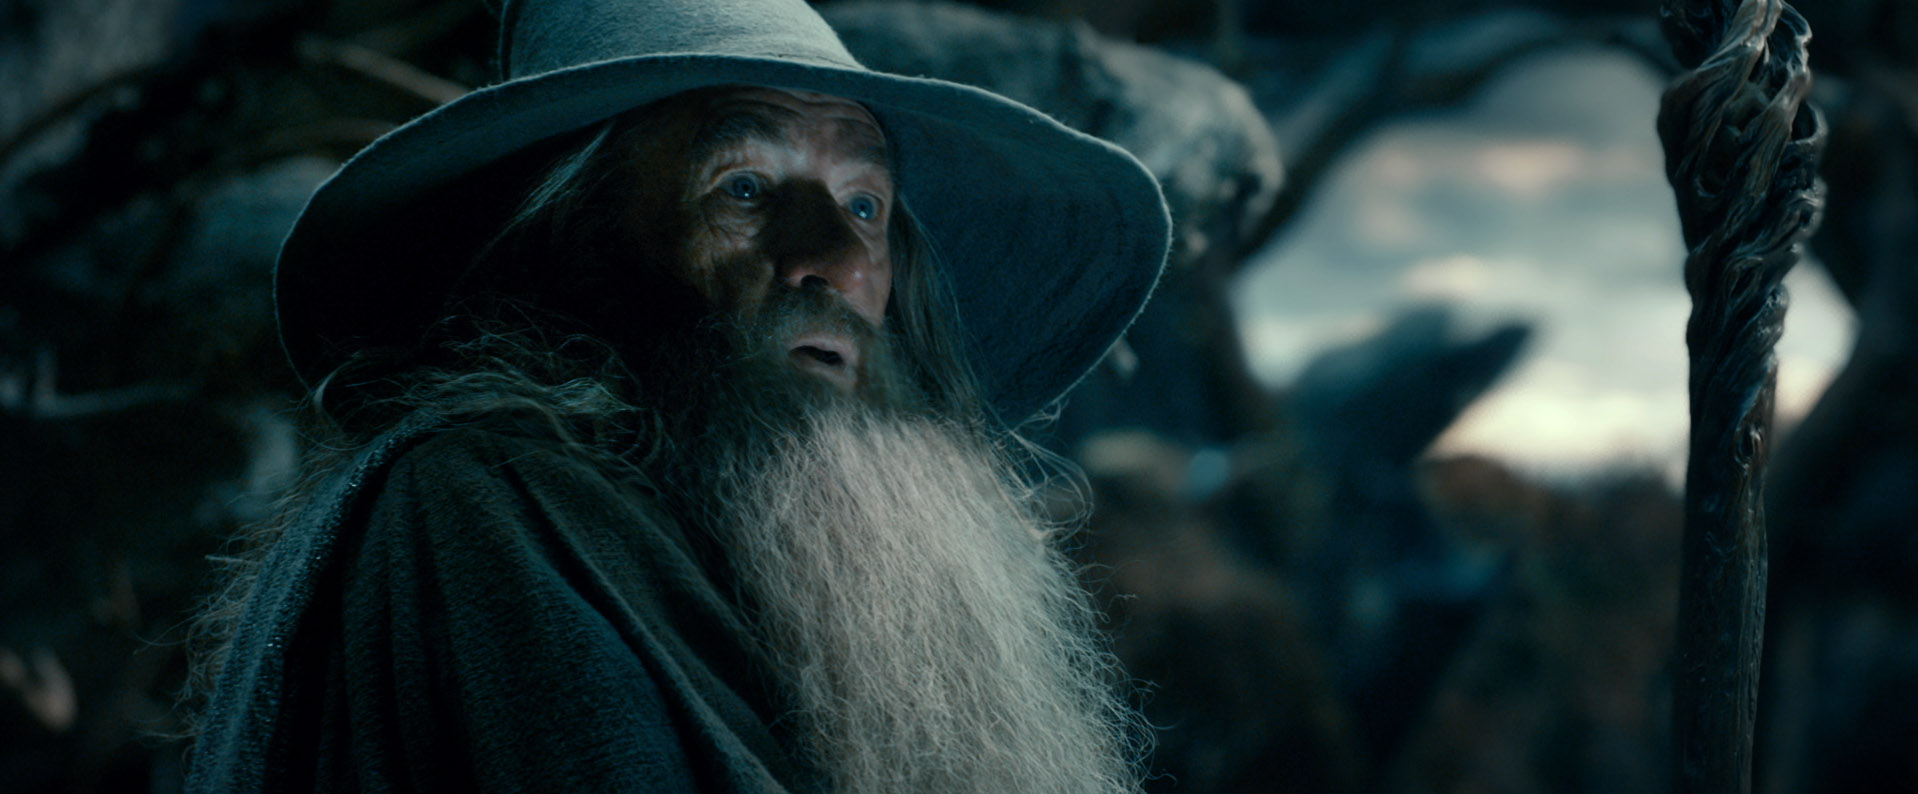 hobbit desolation smaug gandalf The Hobbit: The Desolation Of Smaug Gallery